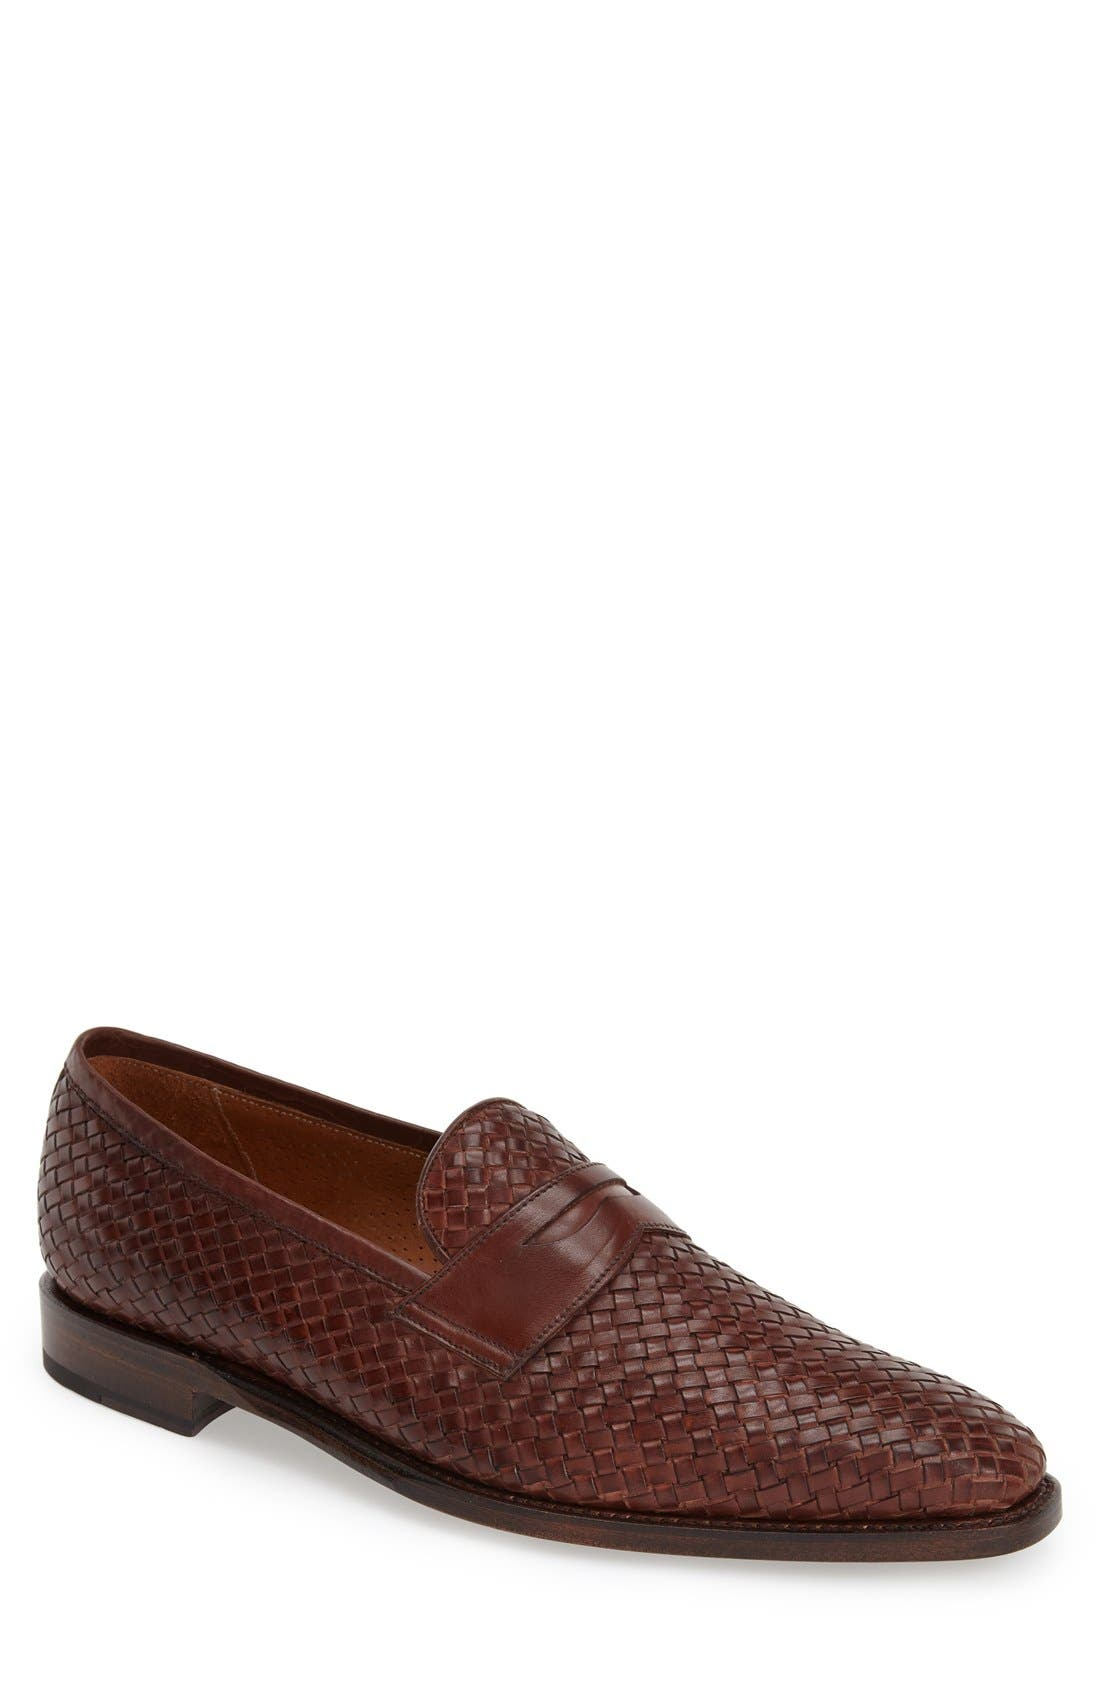 Boots 'Saratoga' Penny Loafer,                         Main,                         color, 200